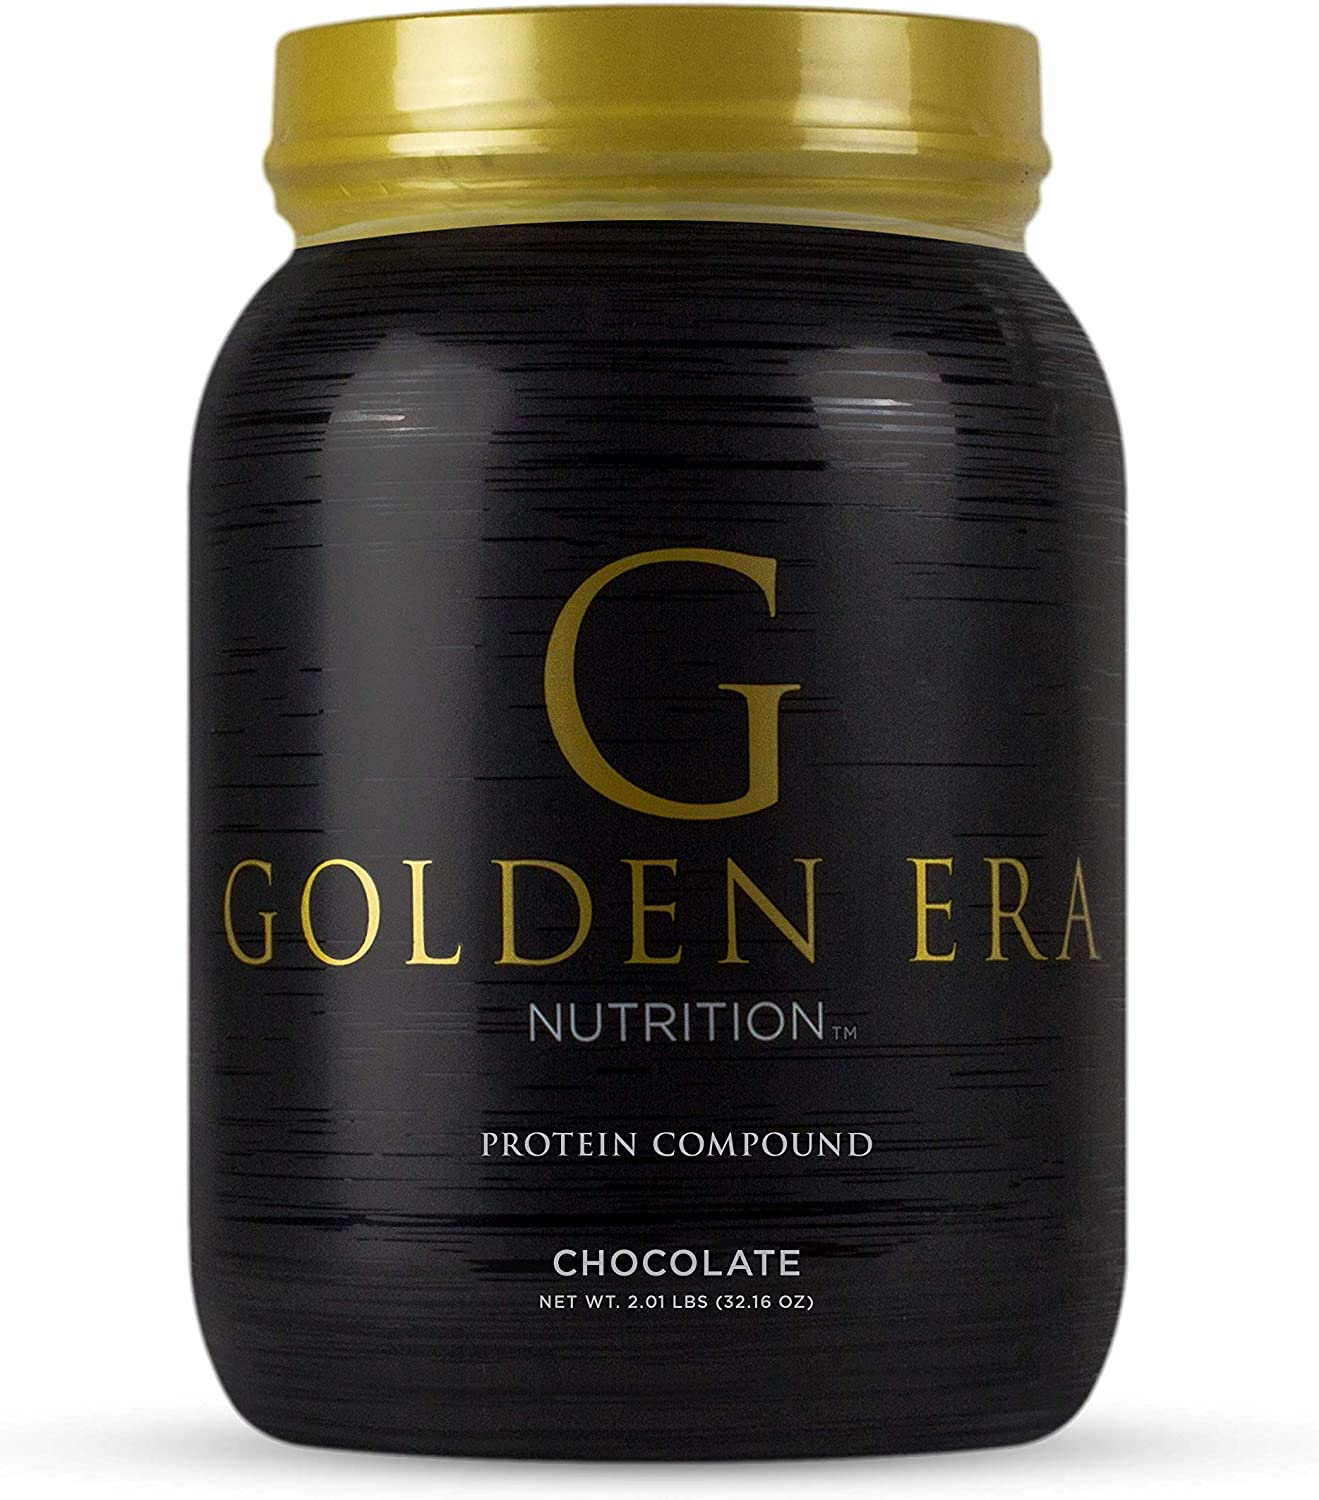 Golden Era Nutrition Whey Protein Compound Powder, Cookies and Cream Flavor, Gluten-Free, 5 Pounds